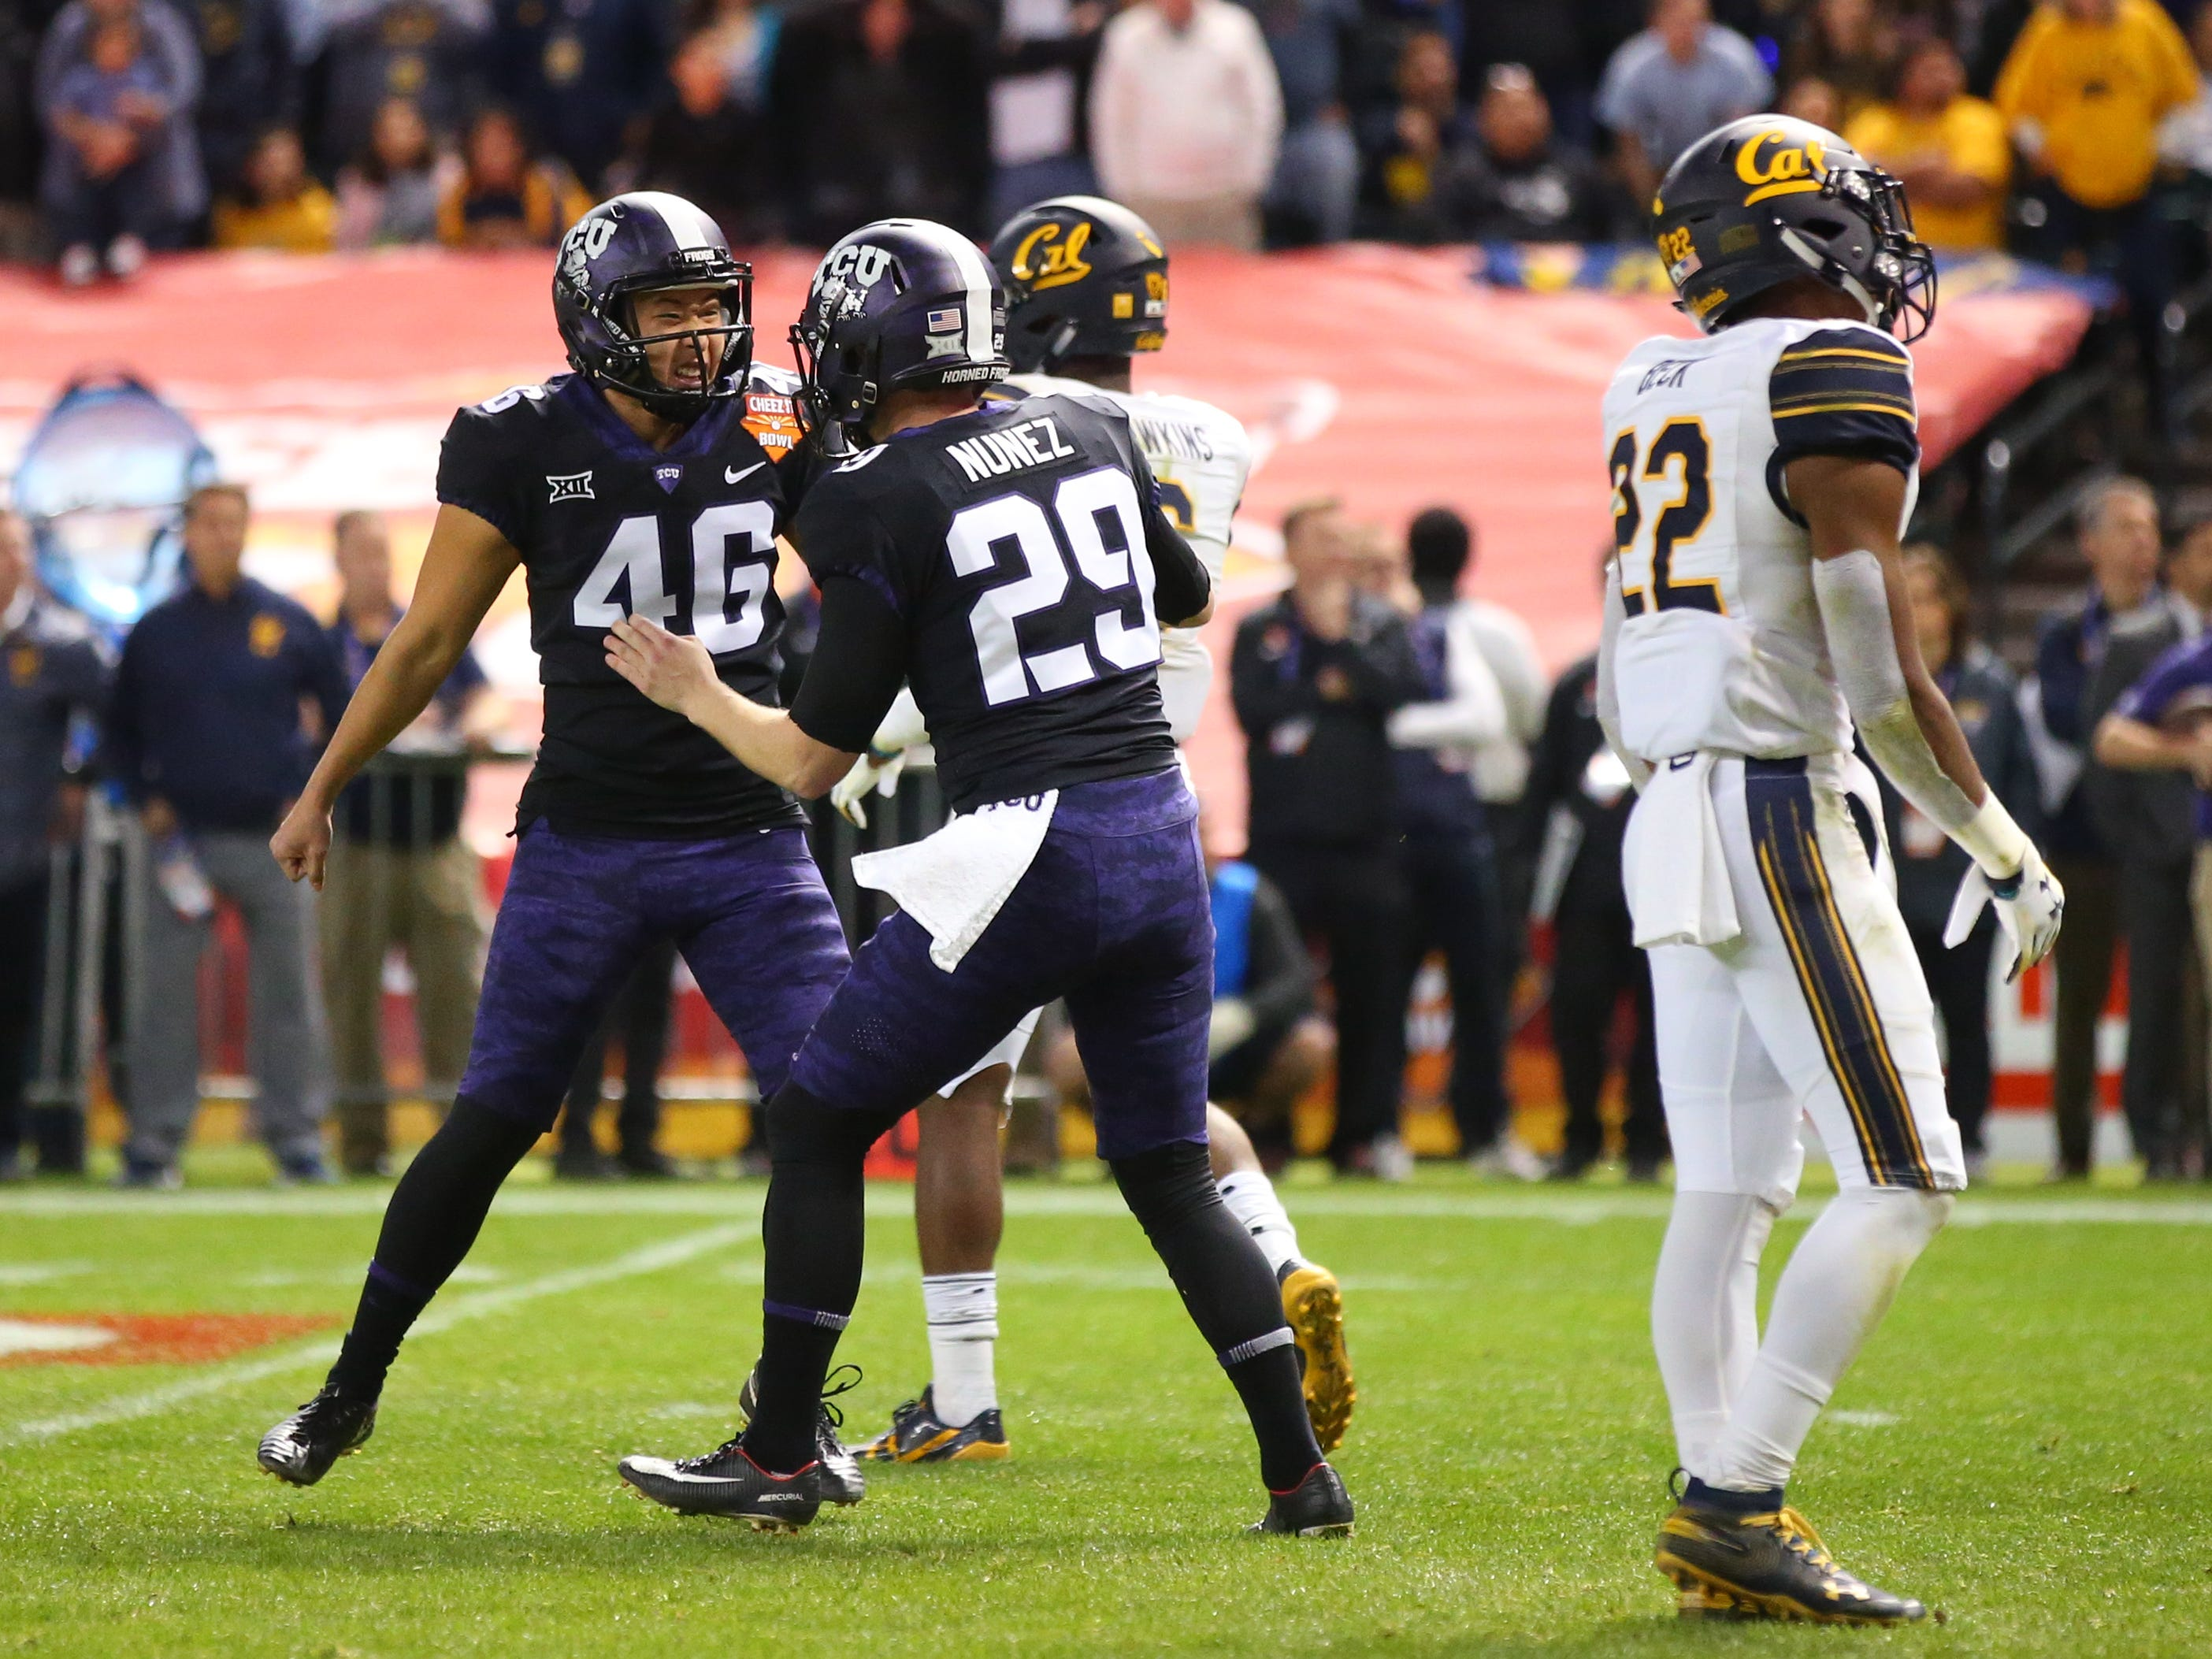 Dec 26, 2018; Phoenix, AZ, USA; Texas Christian Horned Frogs kicker Jonathan Song (46) celebrates with Adam Nunez (29) after kicking the game winning field goal against the California Golden Bears in overtime of the 2018 Cheez-It Bowl at Chase Field.